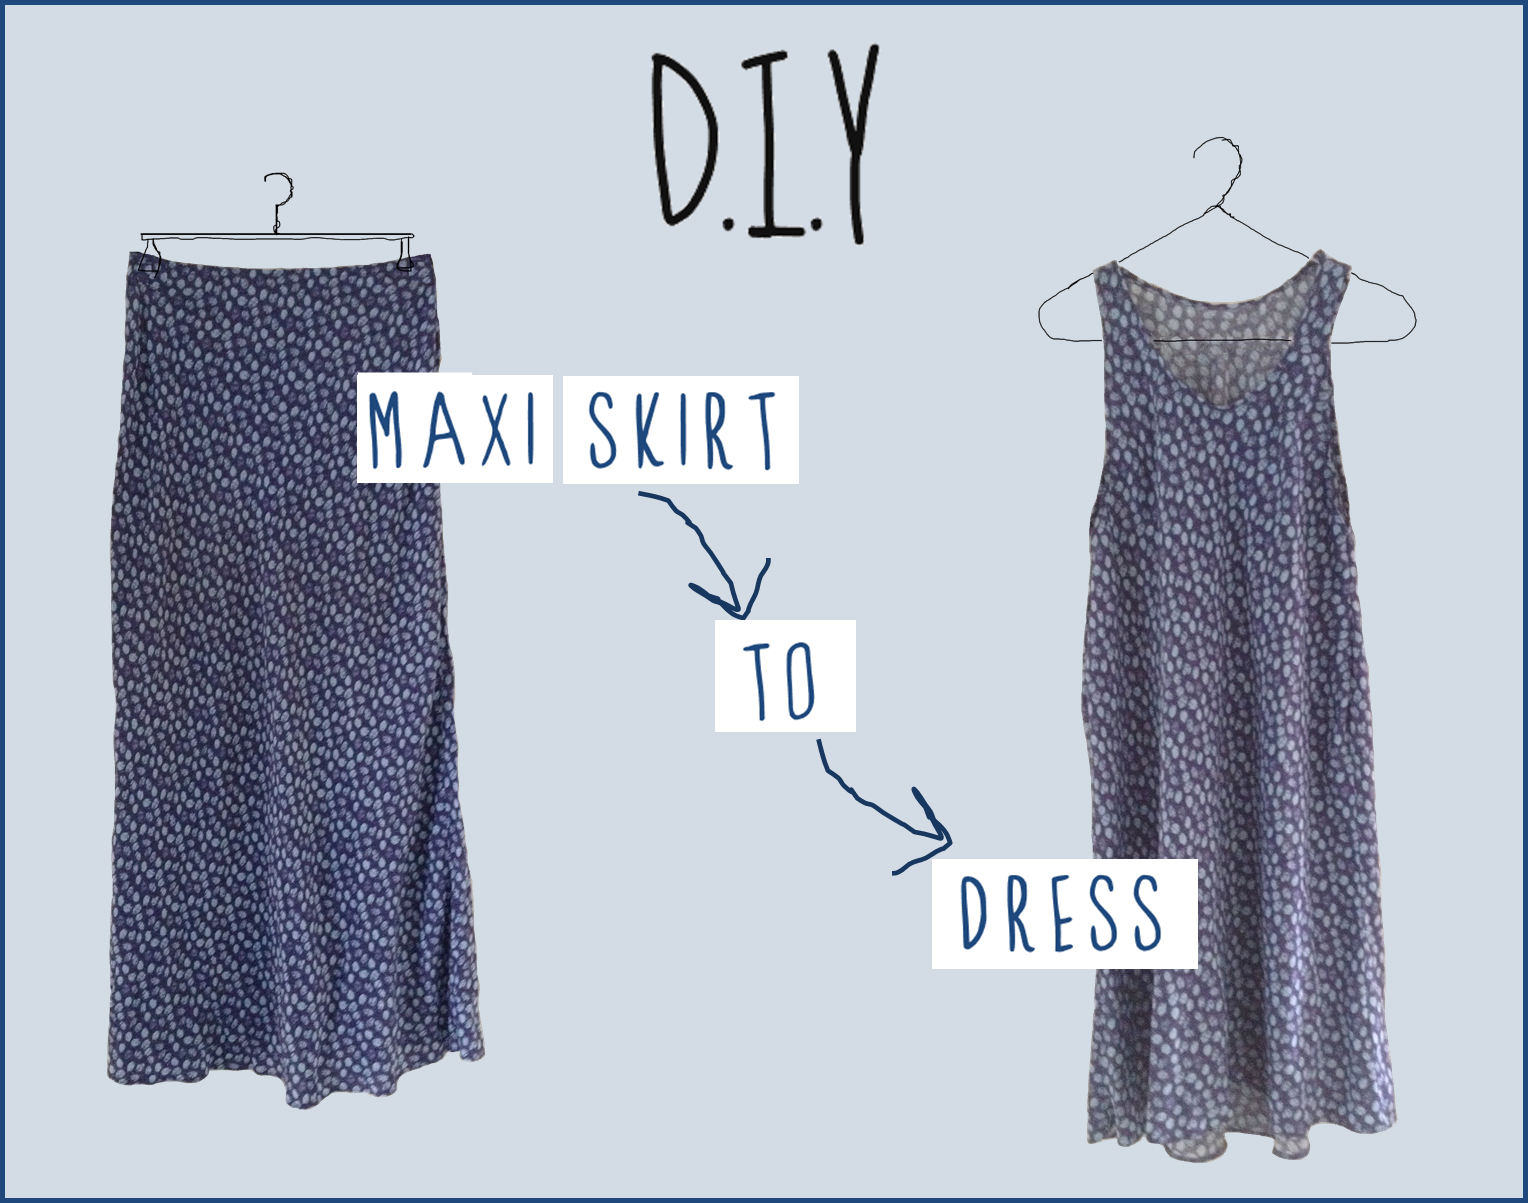 allurescent: DIY Turn a Maxi Skirt into a Dress in 3 Easy ...